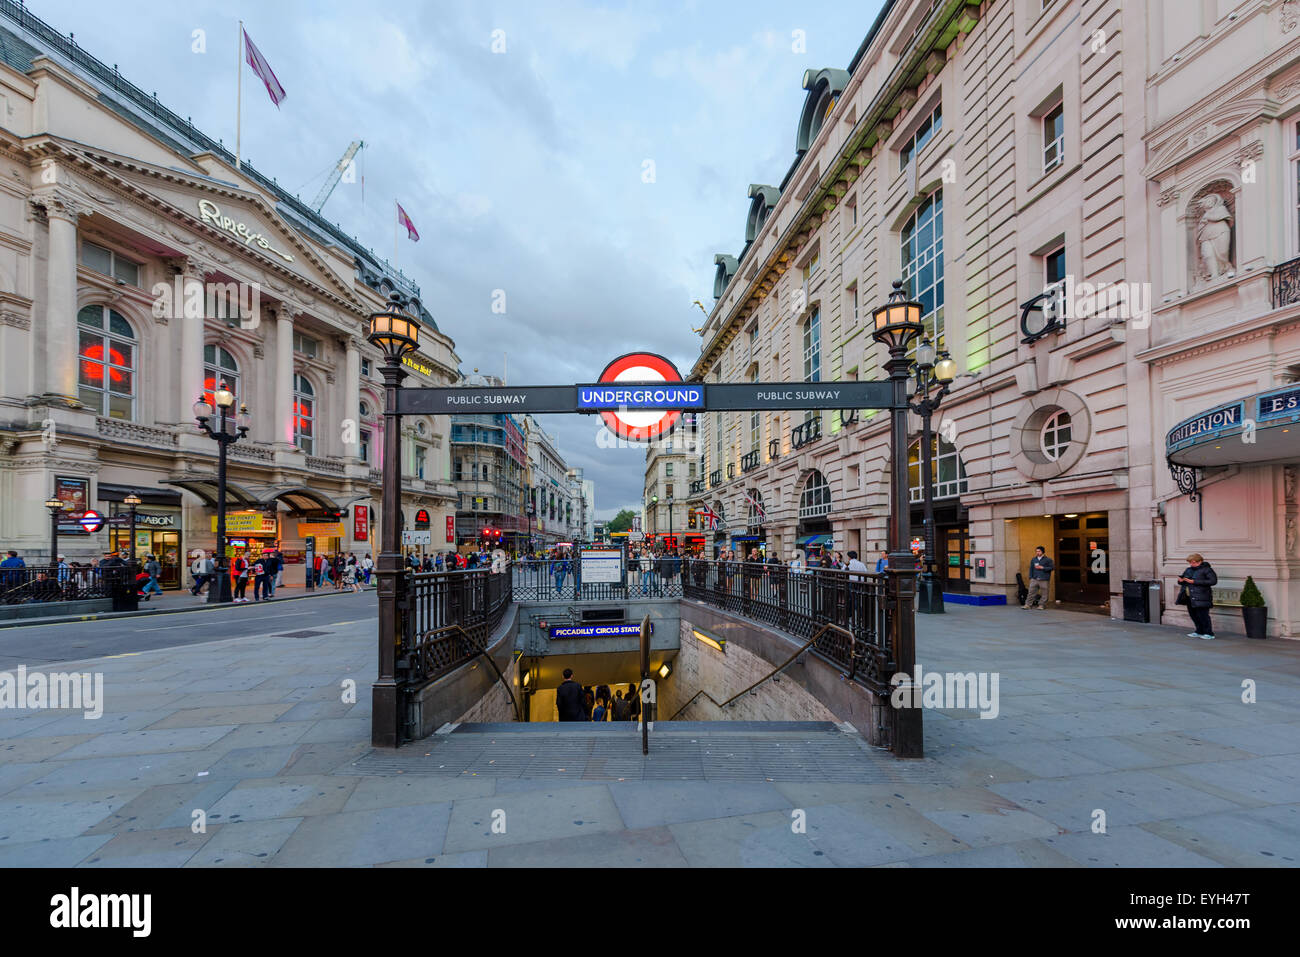 A London underground tube station on July 28, 2015 in Piccadilly Circus London, England. Stock Photo